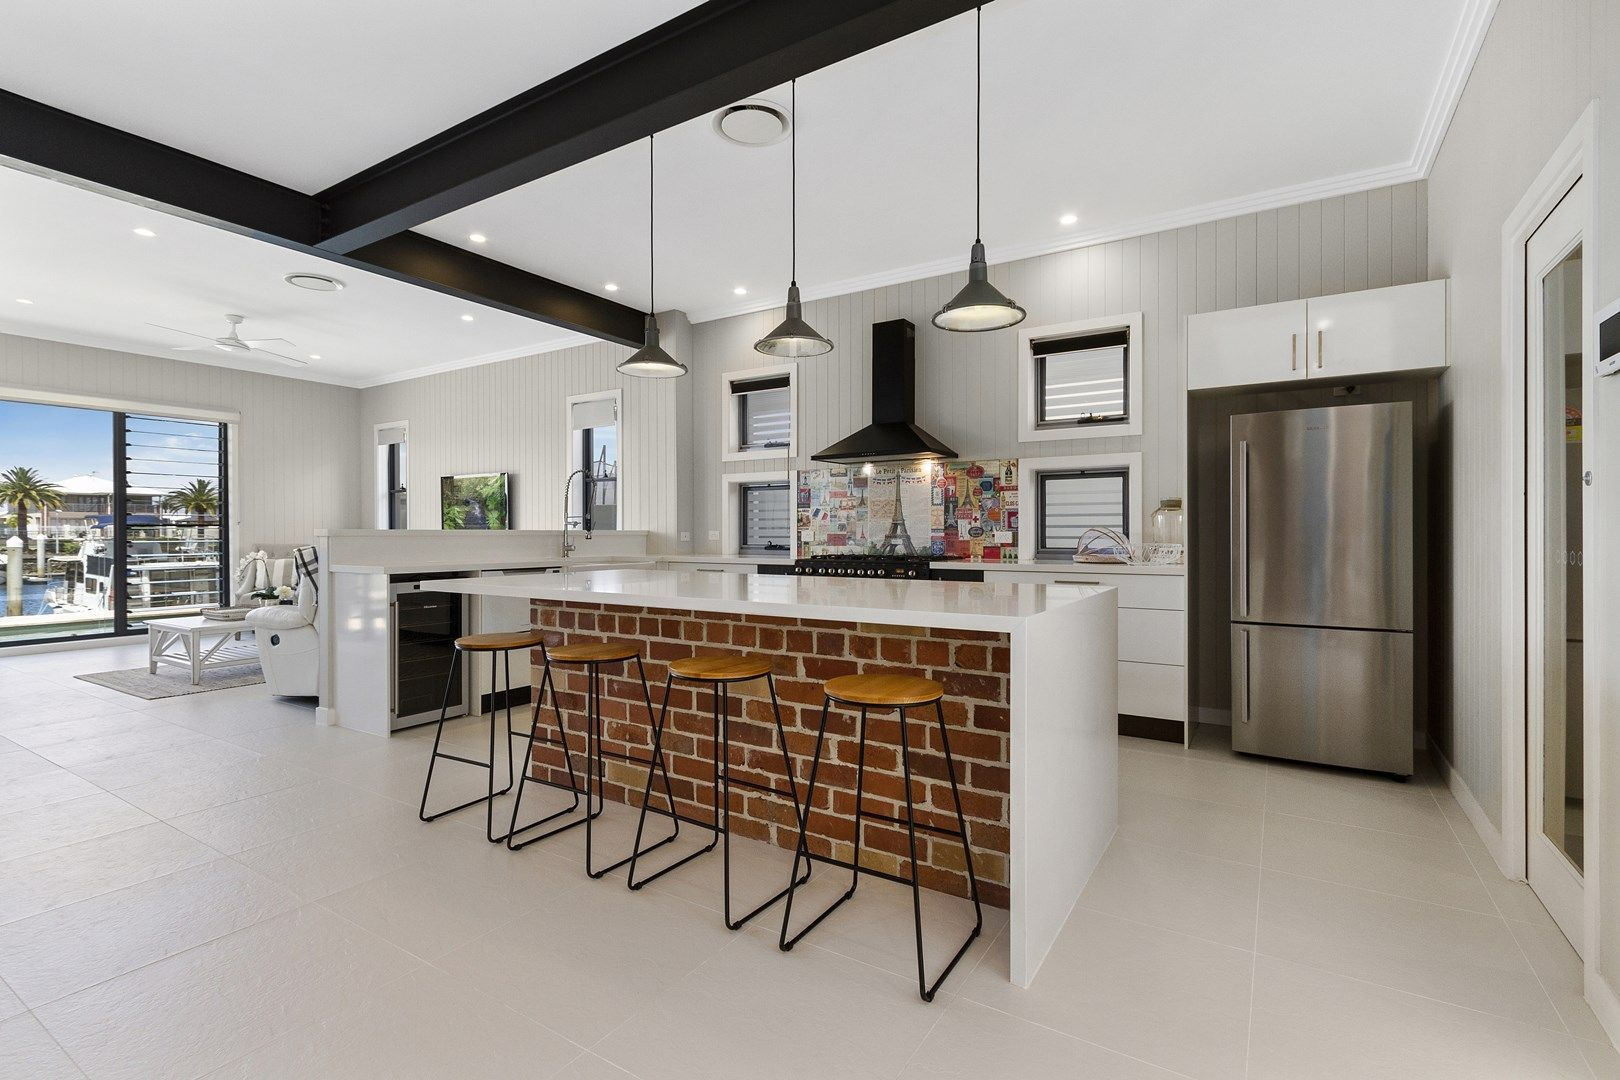 Commercial Kitchens For Rent Gold Coast